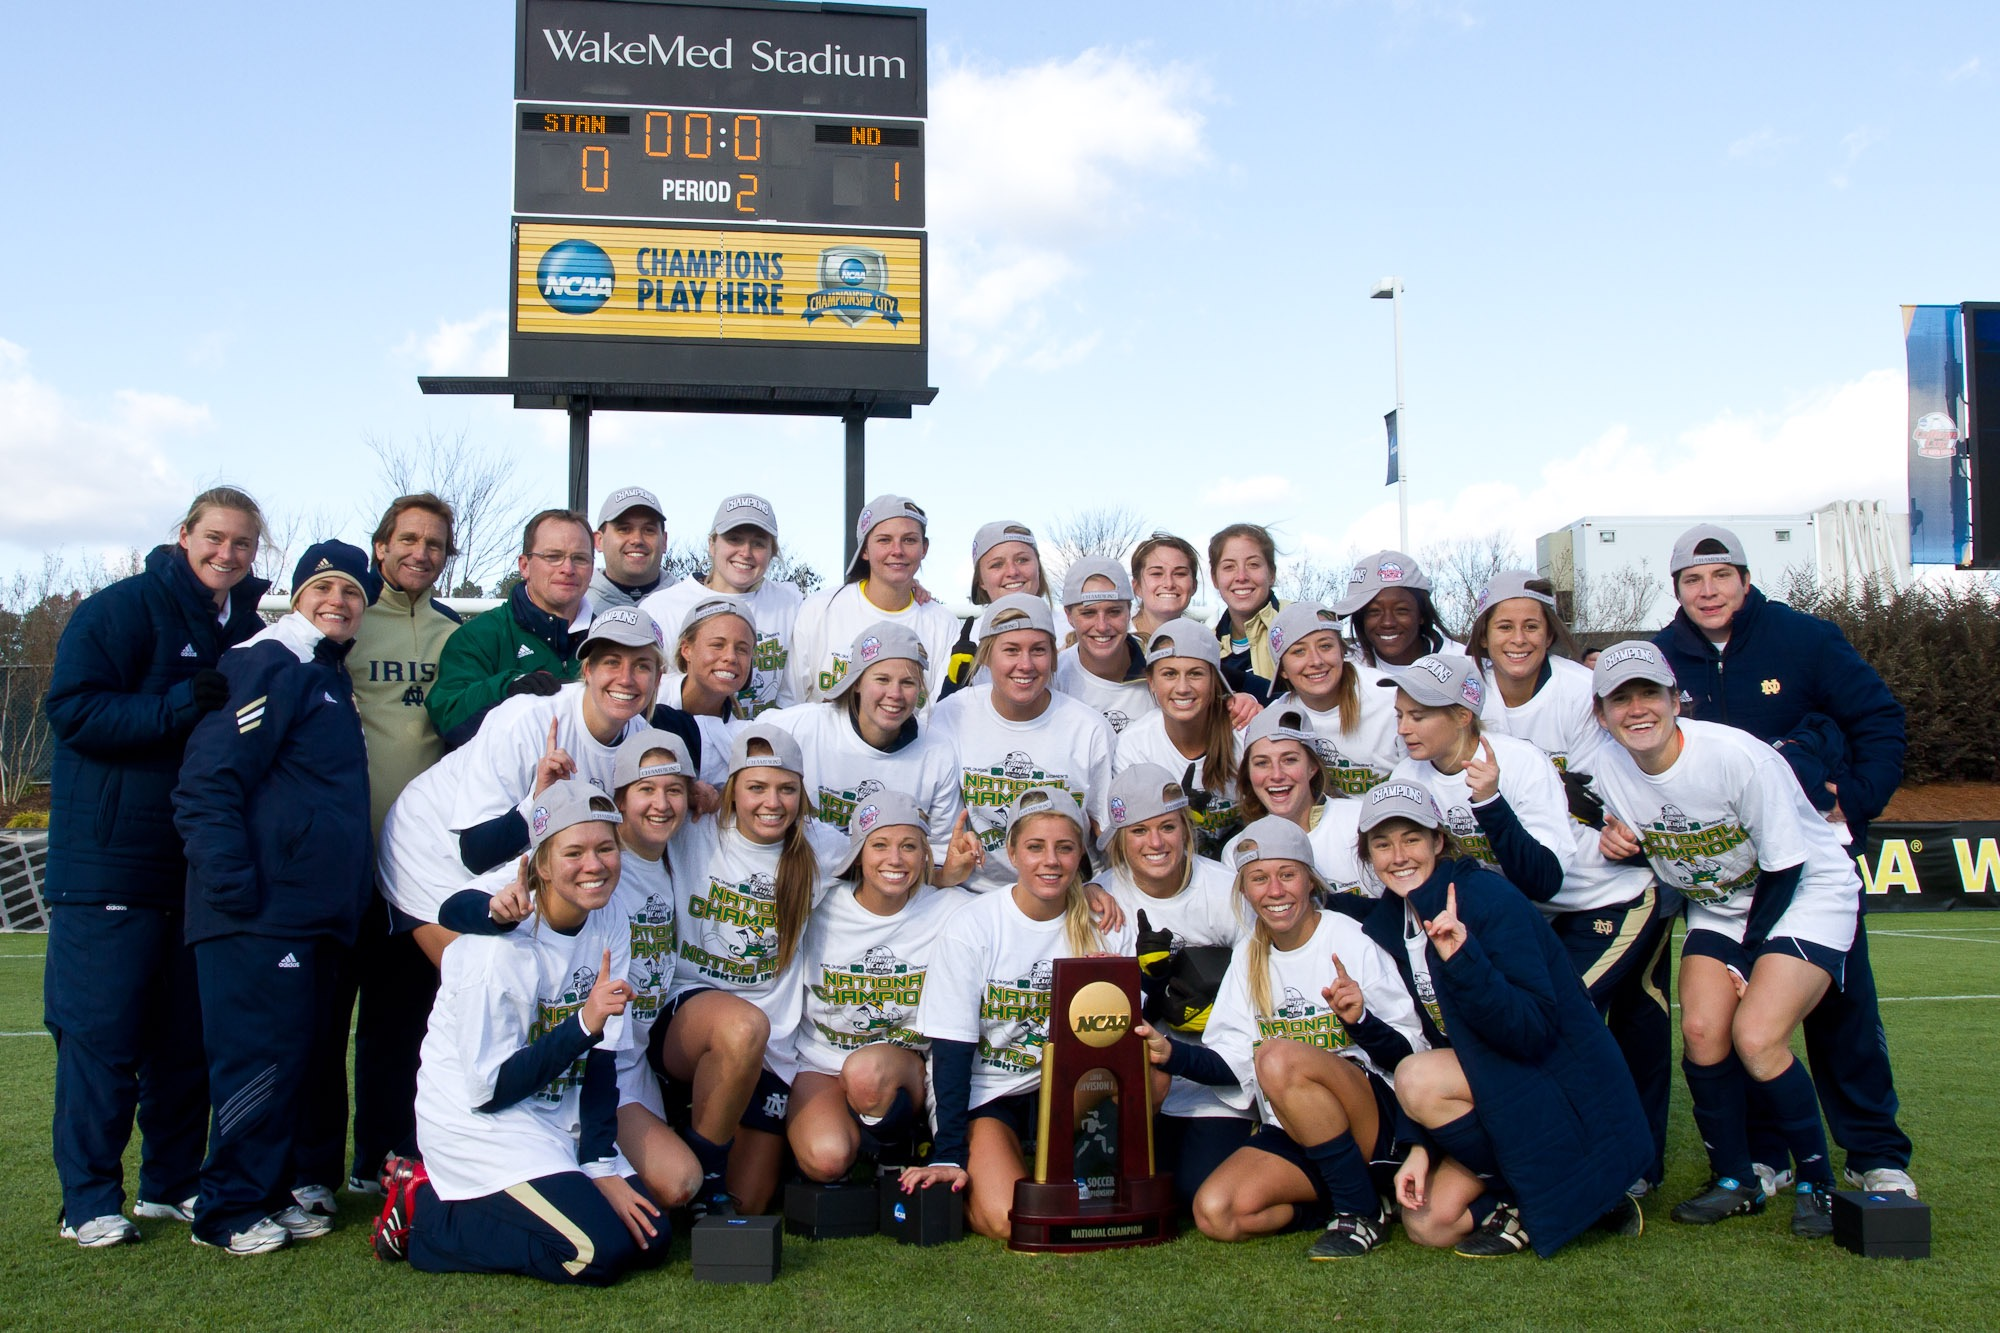 Soon after their bake sale, Lindsay's team won the NCAA trophy; so not only did they bake a change, they also became the best women's collegiate soccer team in the U.S.!